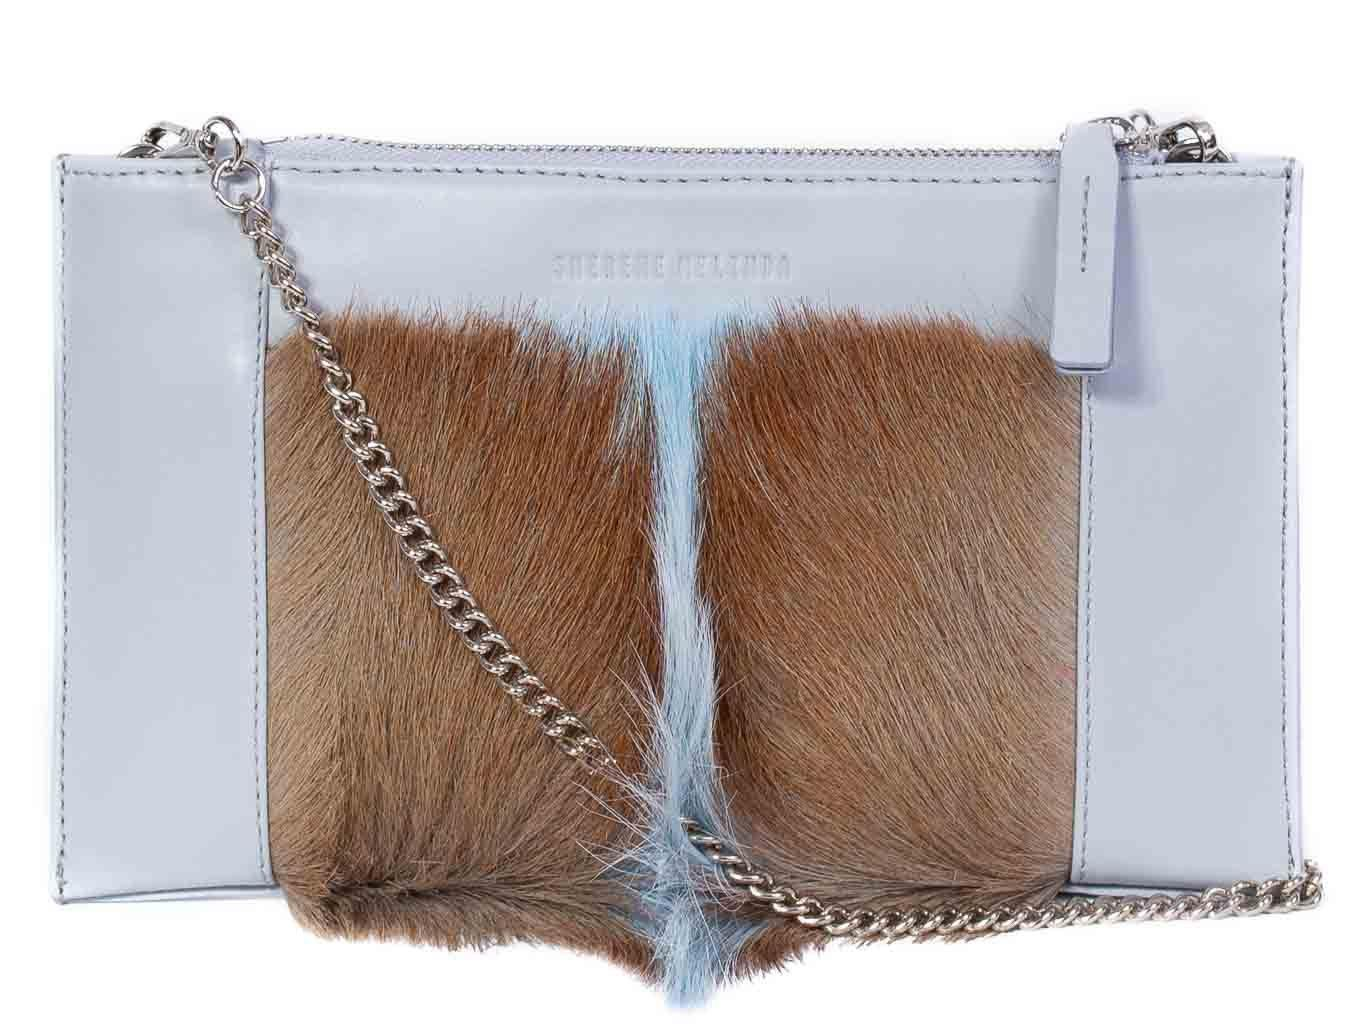 Clutch Springbok Handbag in Baby Blue with a fan feature by Sherene Melinda front strap